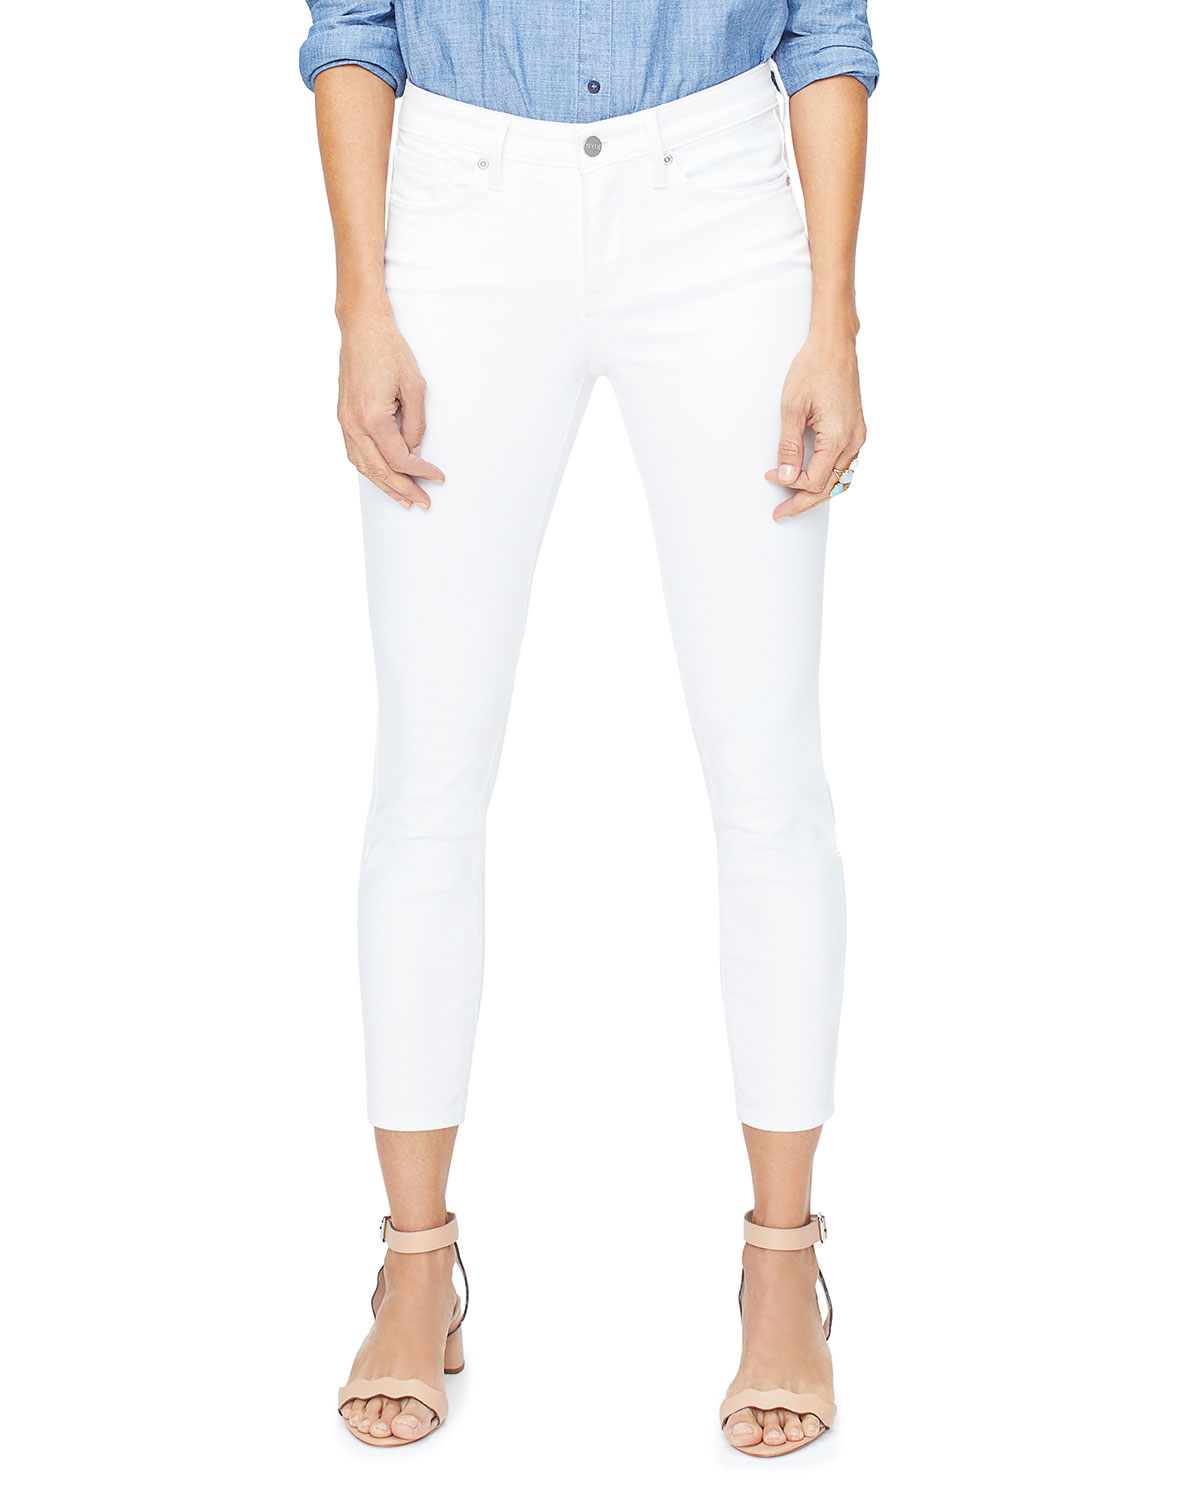 Nydj Jeans AMI CROPPED SKINNY ANKLE JEANS